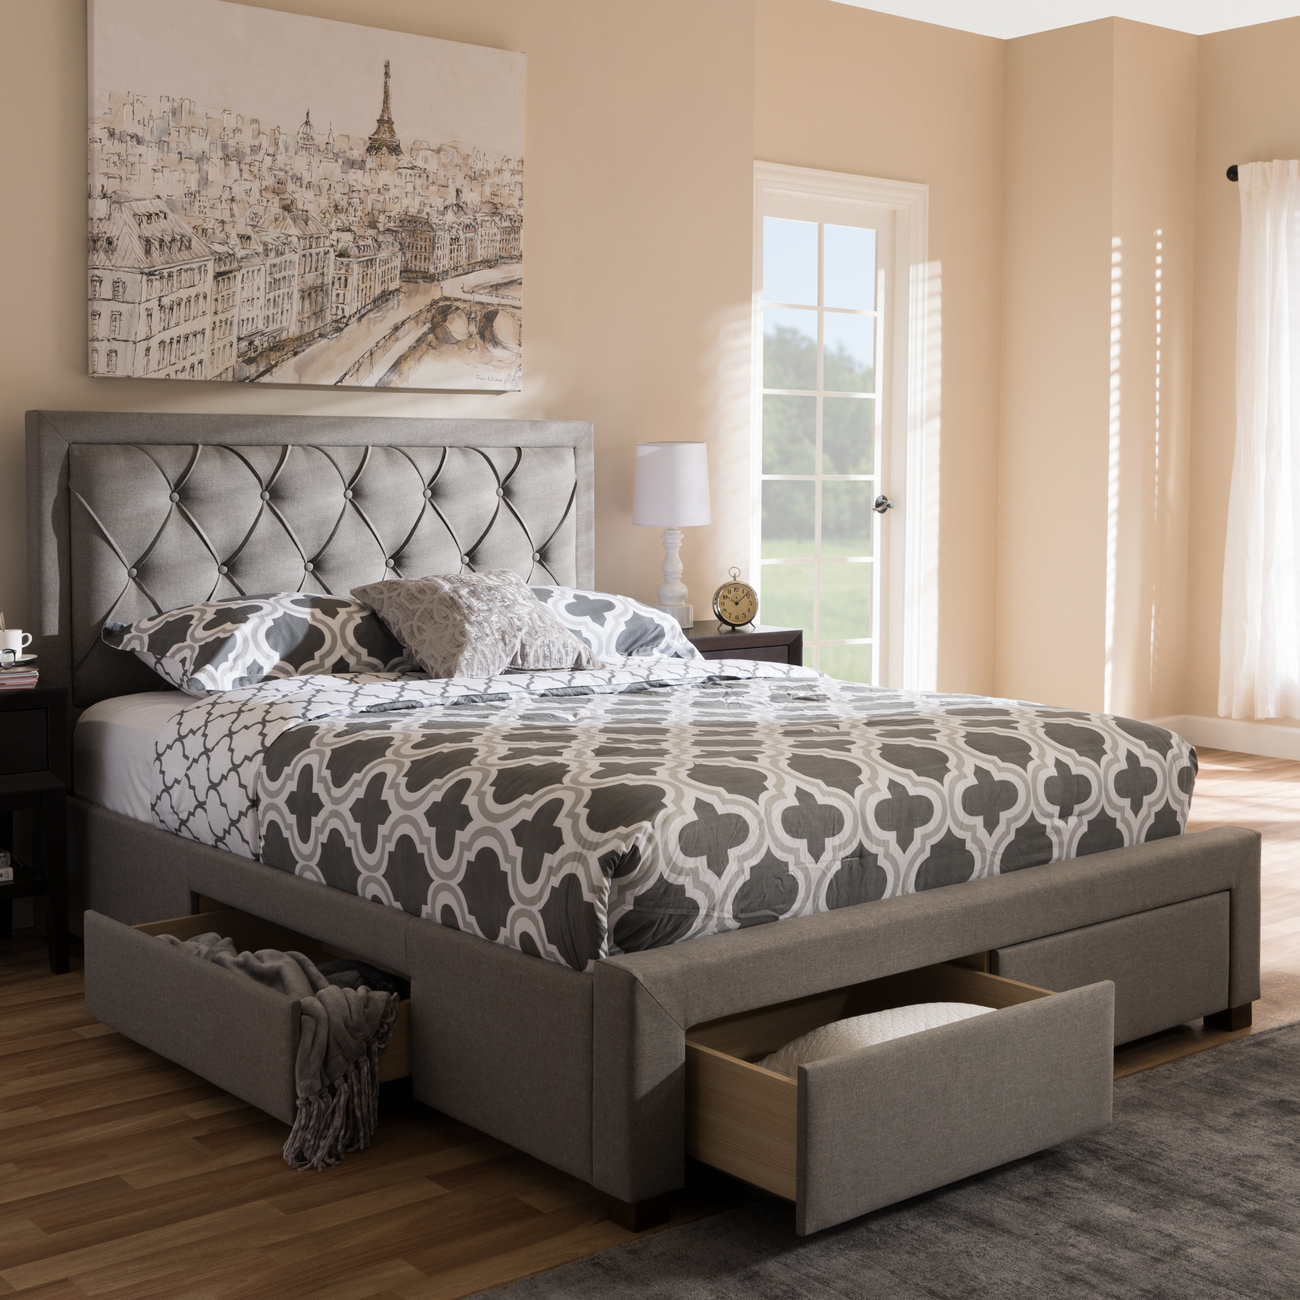 Wholesale Interiors Upholstered Storage Bed King